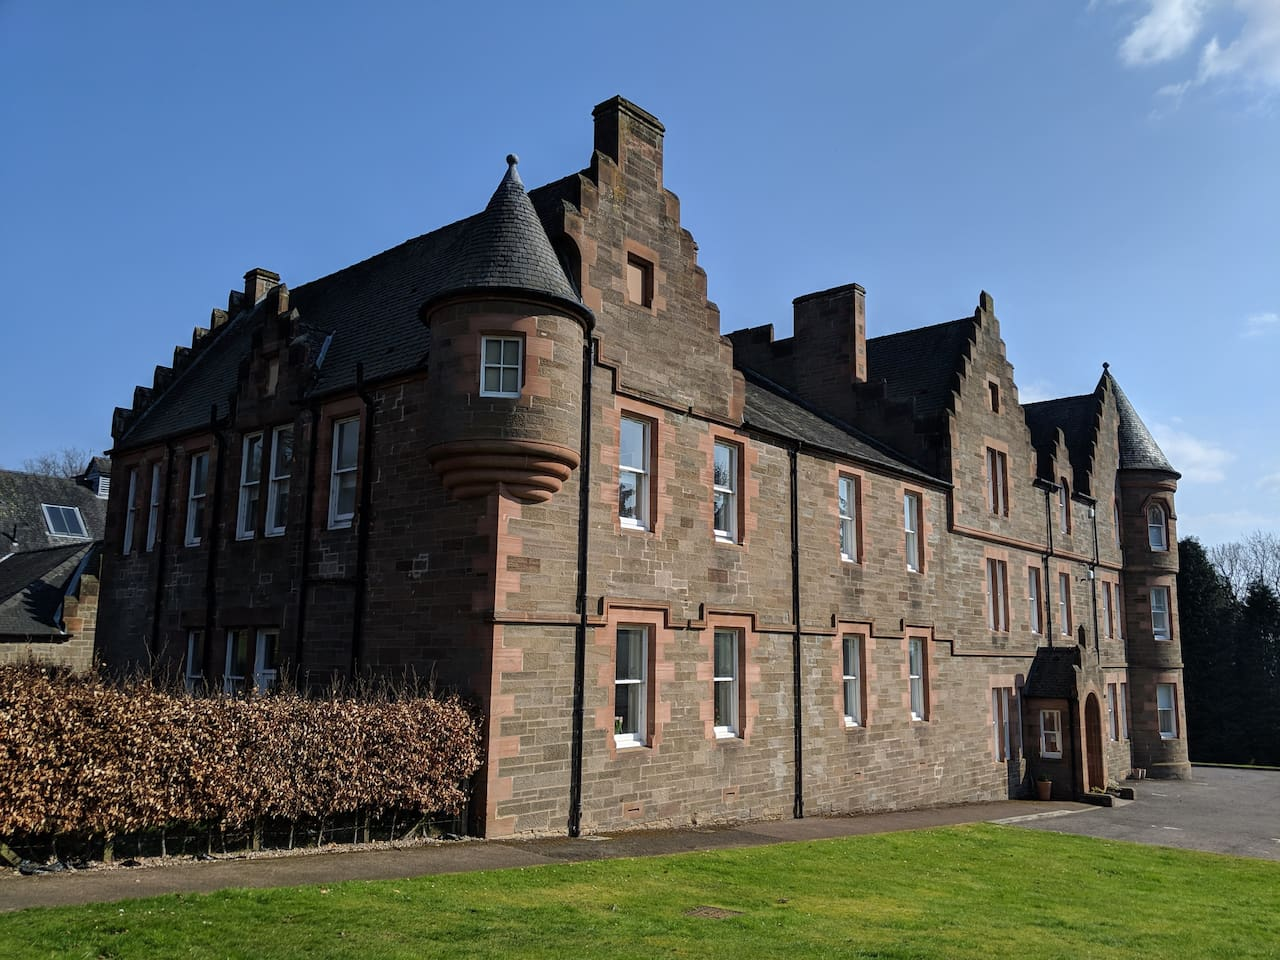 The Old Hospital